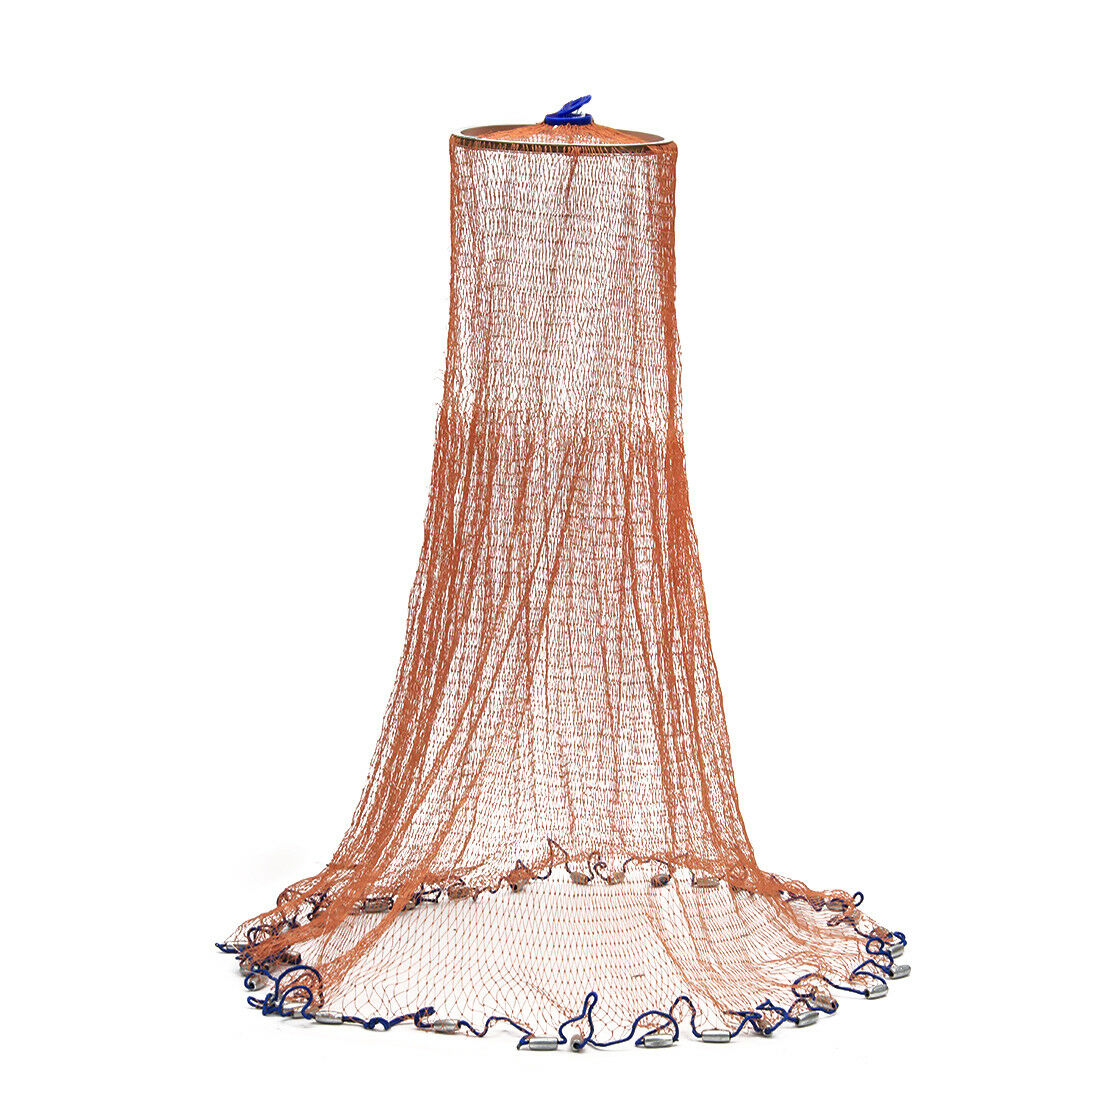 ZANLURE 3.6M Cast Fishing Net American Style Throwing Fishing Network Strong